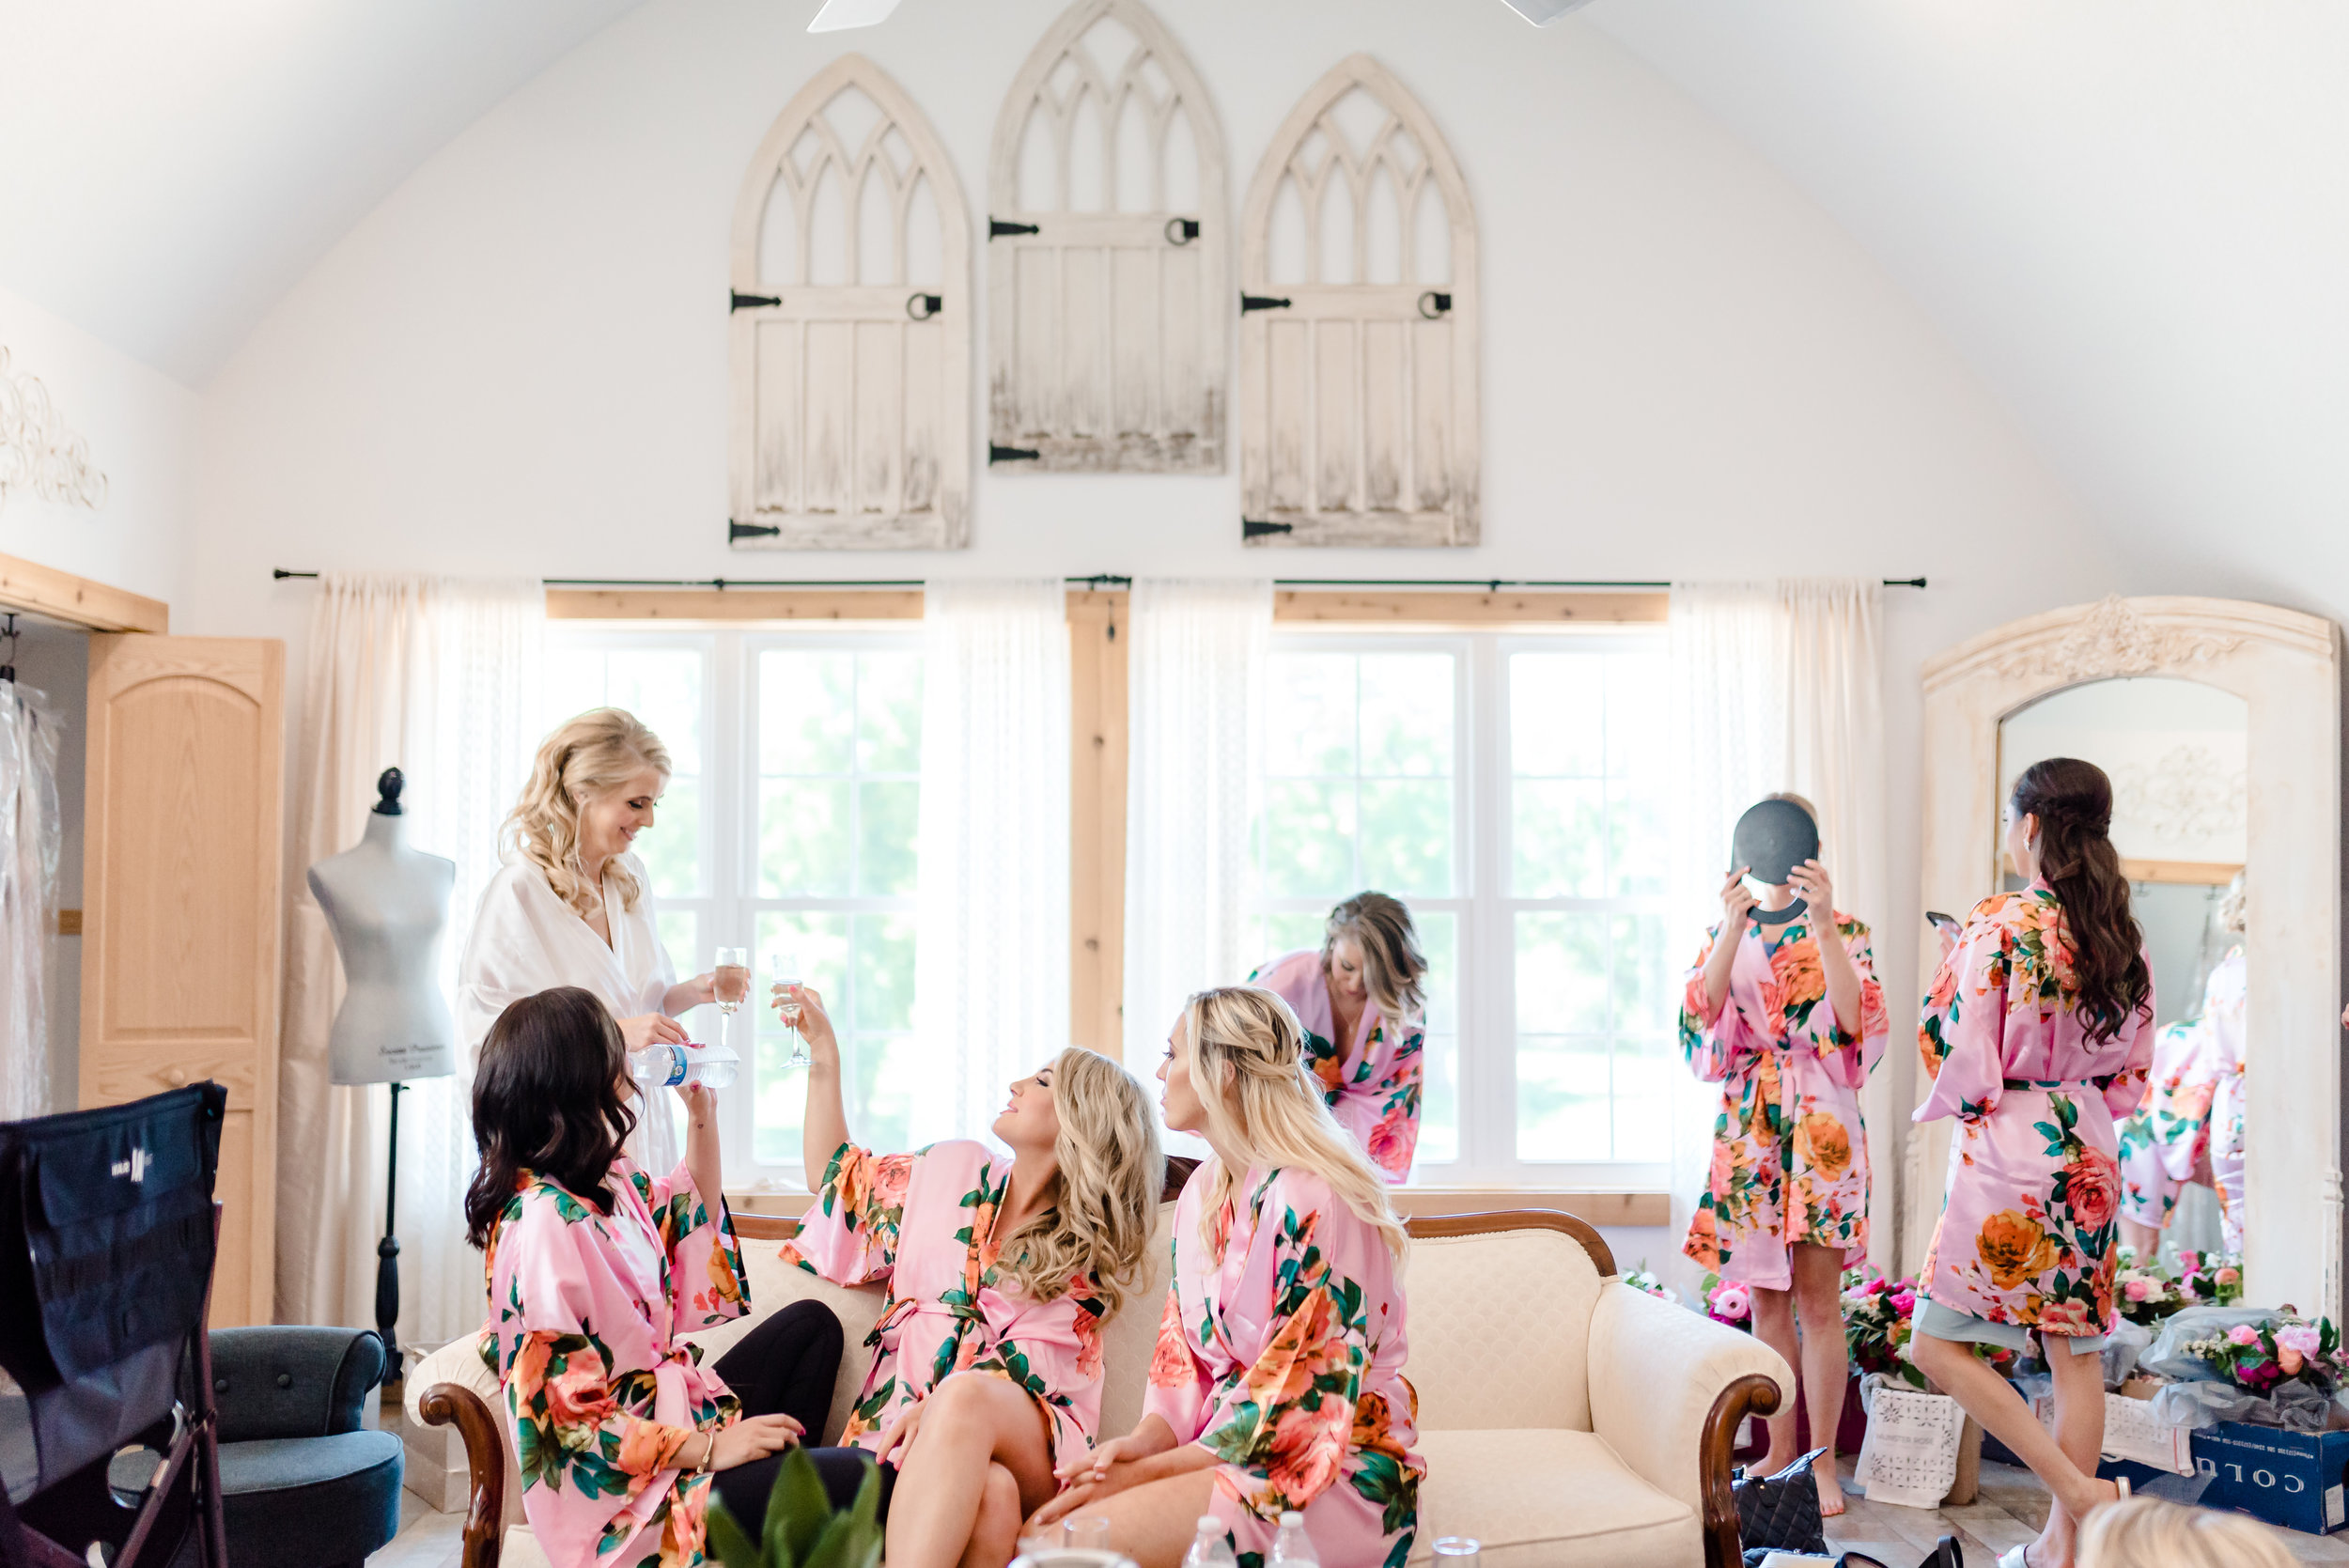 Bridal Suite at John P Furber Farm Wedding - Bride and Bridesmaids - MN Wedding Photographer